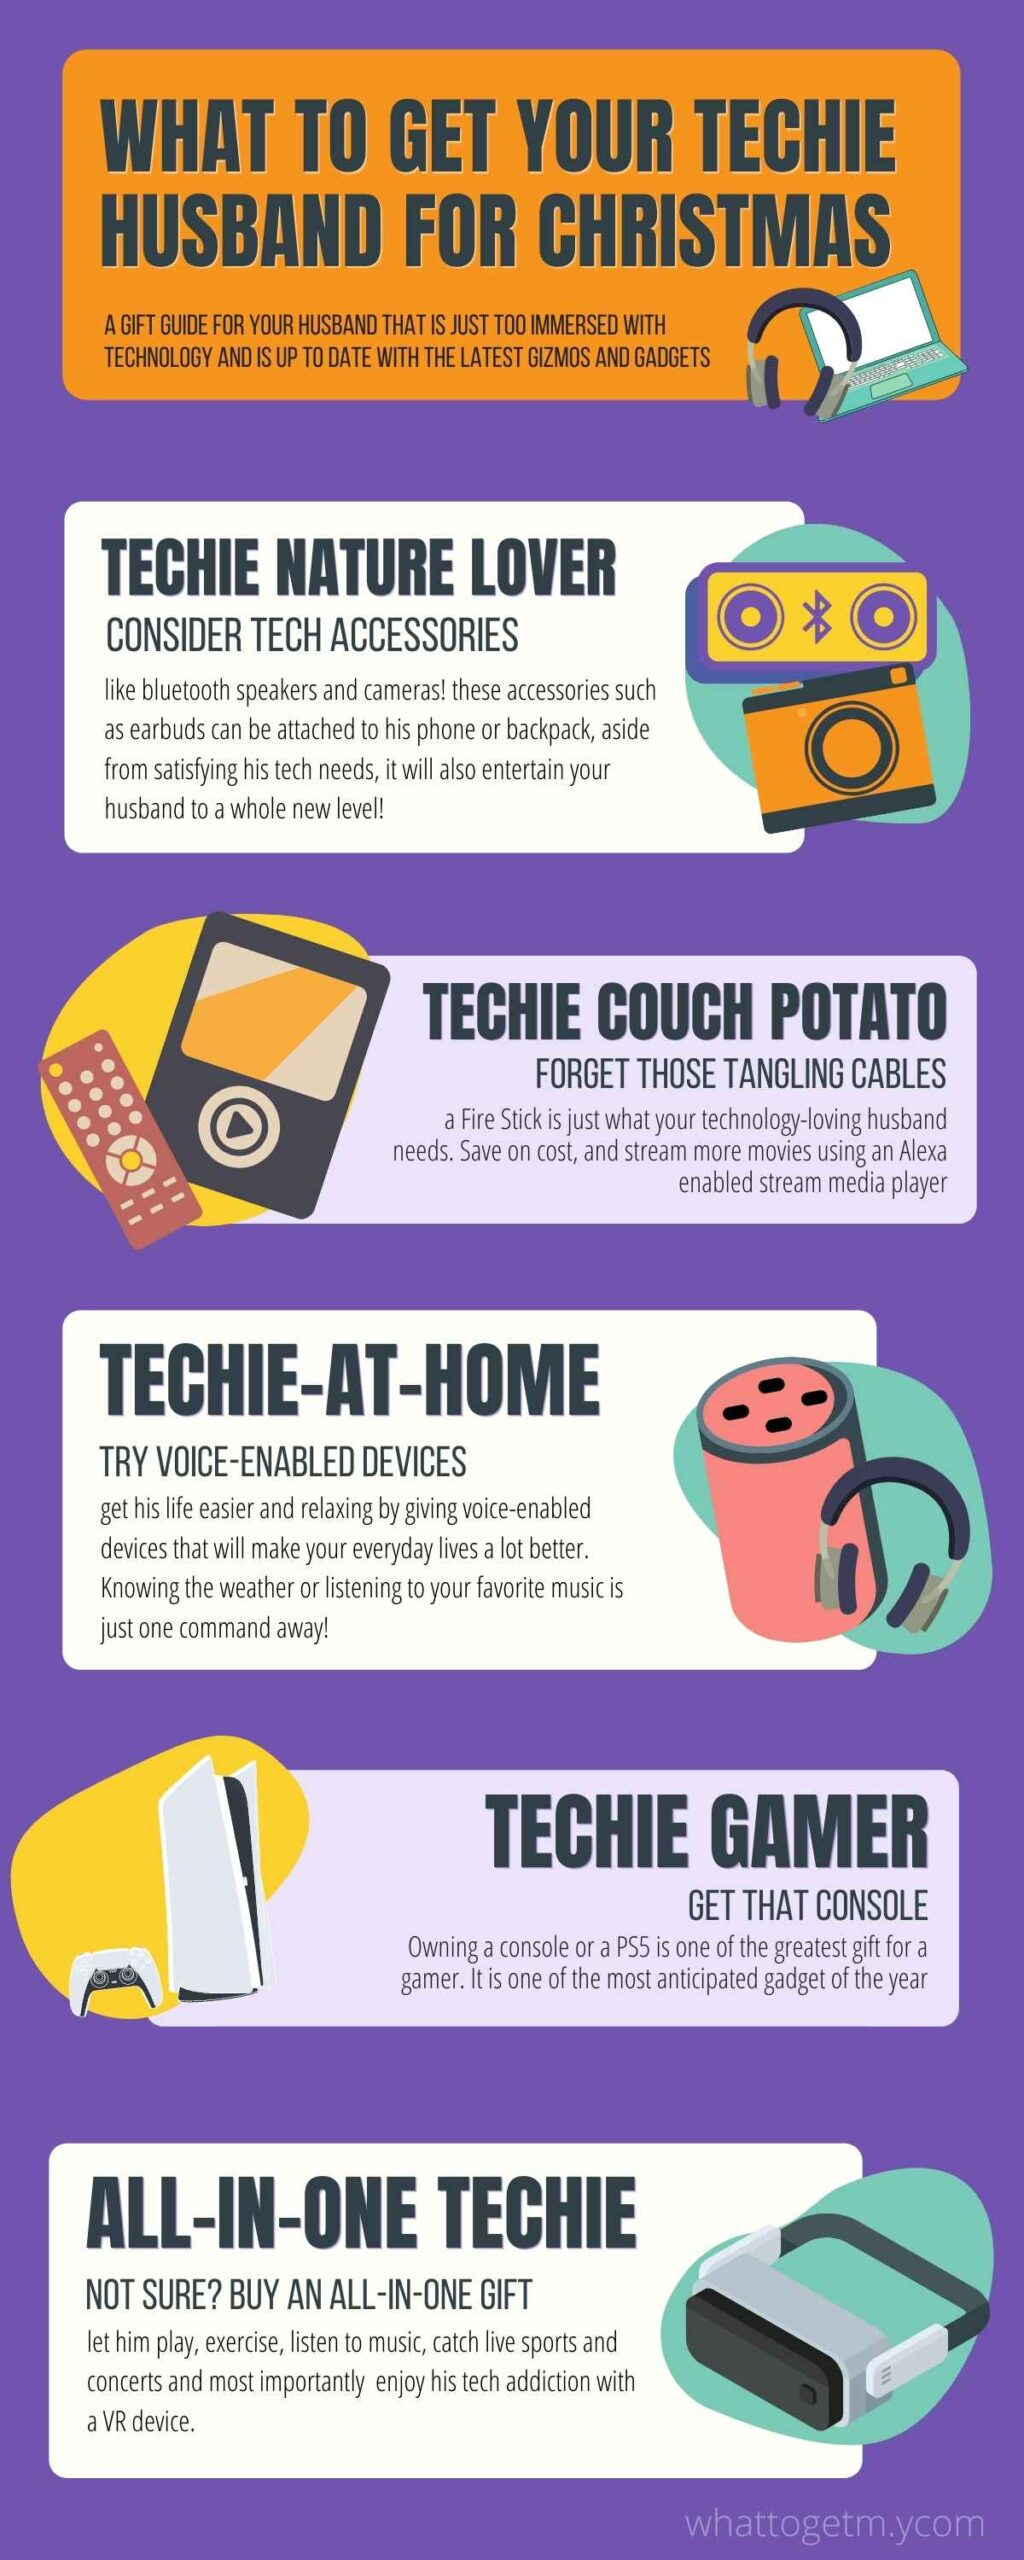 WHAT TO GET YOUR TECHIE HUSBAND FOR CHRISTMAS Infograph